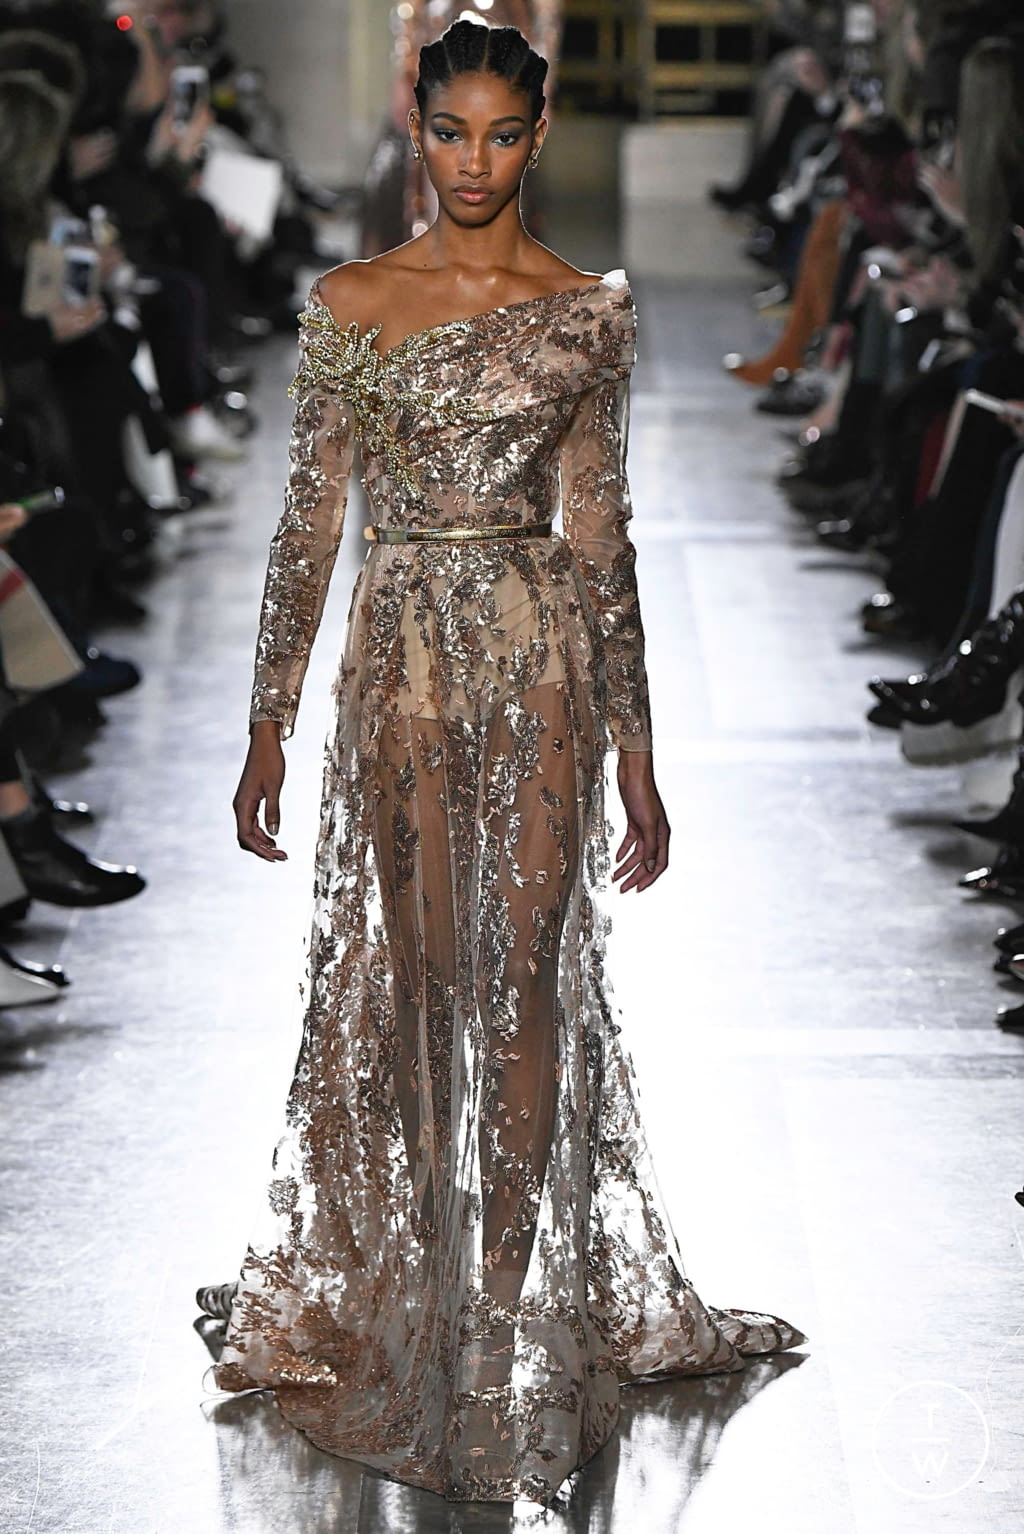 Fashion Week Paris Spring/Summer 2019 look 42 from the Elie Saab collection 高级定制